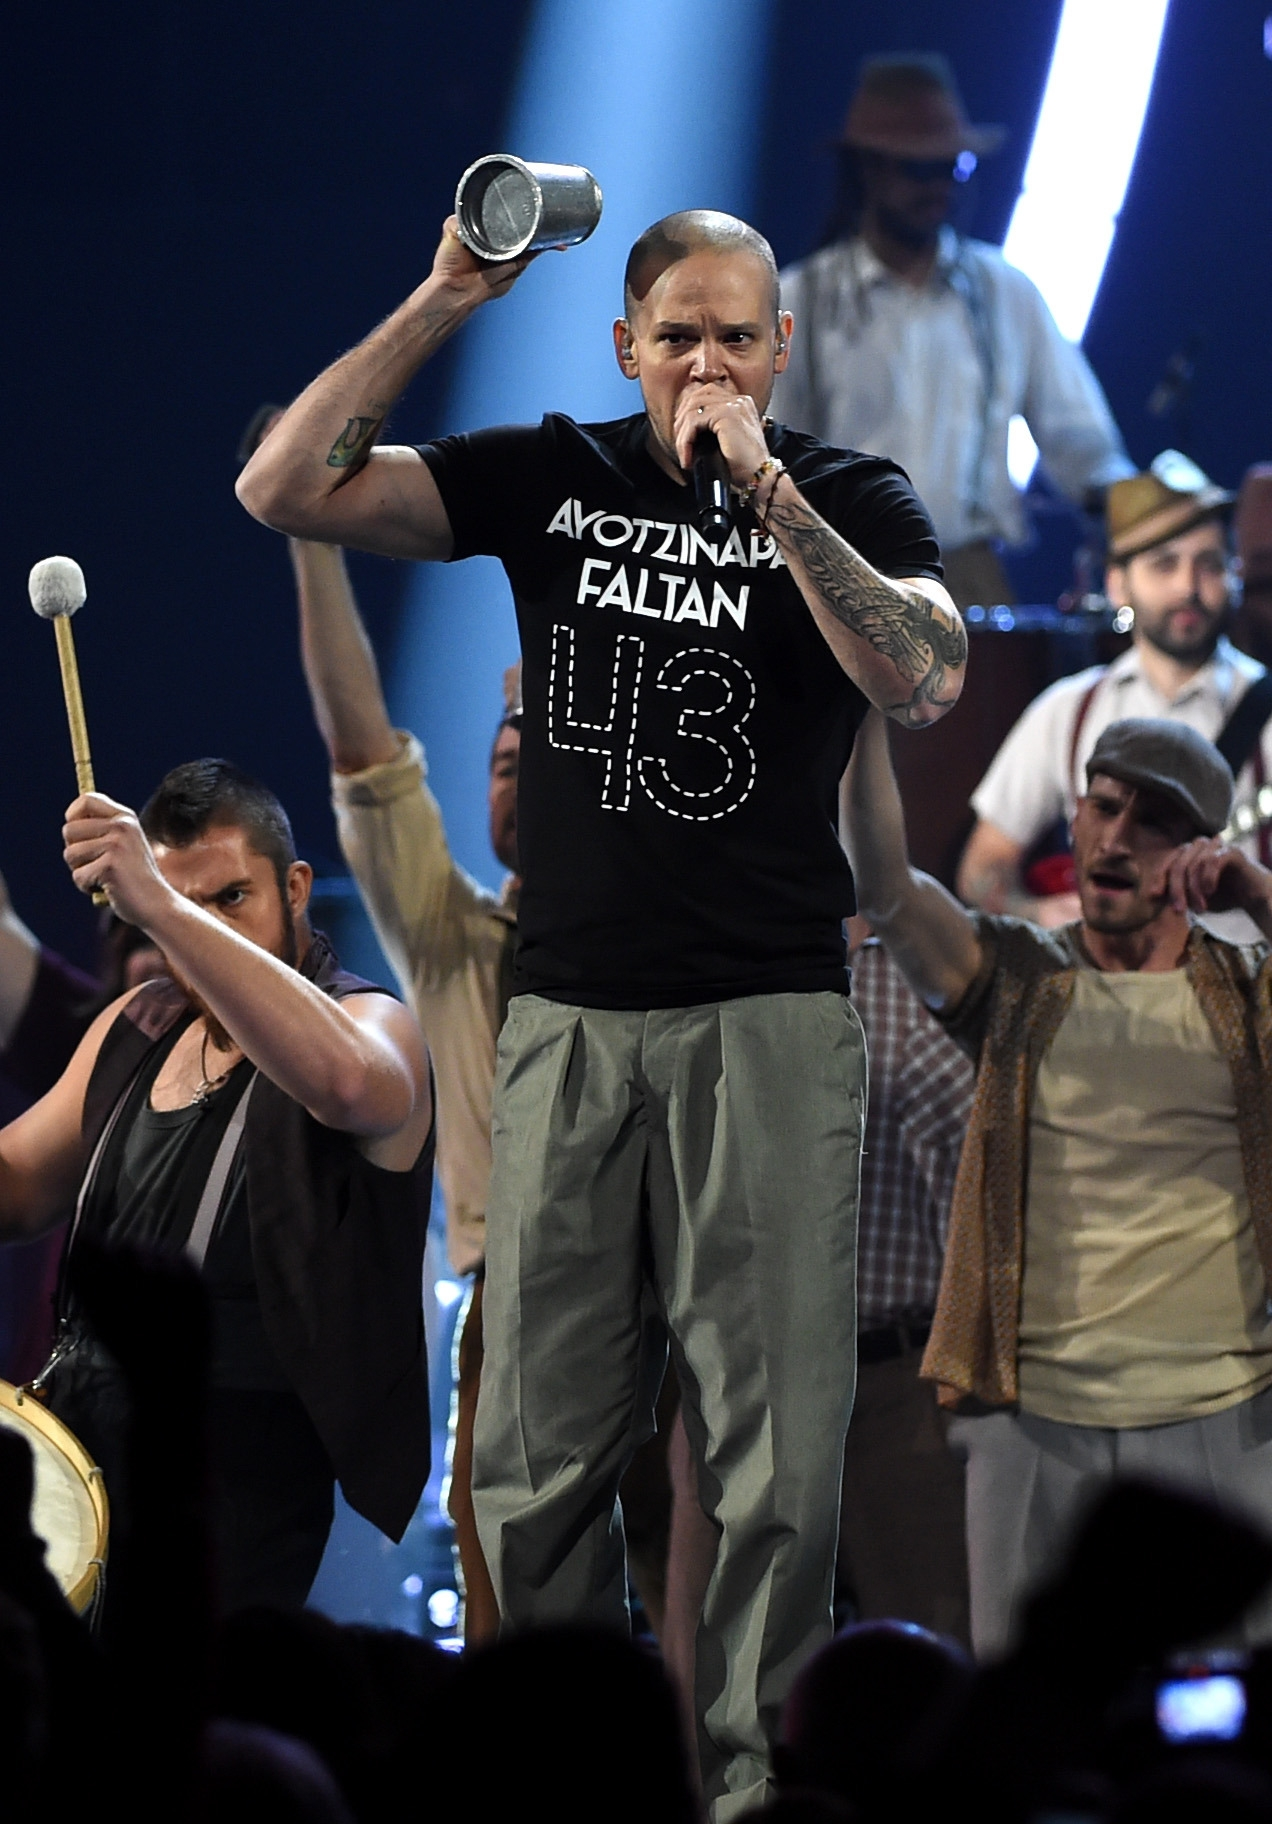 Singer Rene Perez Joglar of Calle 13 performs onstage during the 15th annual Latin Grammy Awards at the MGM Grand Garden Arena in Las Vegas on Thursday.